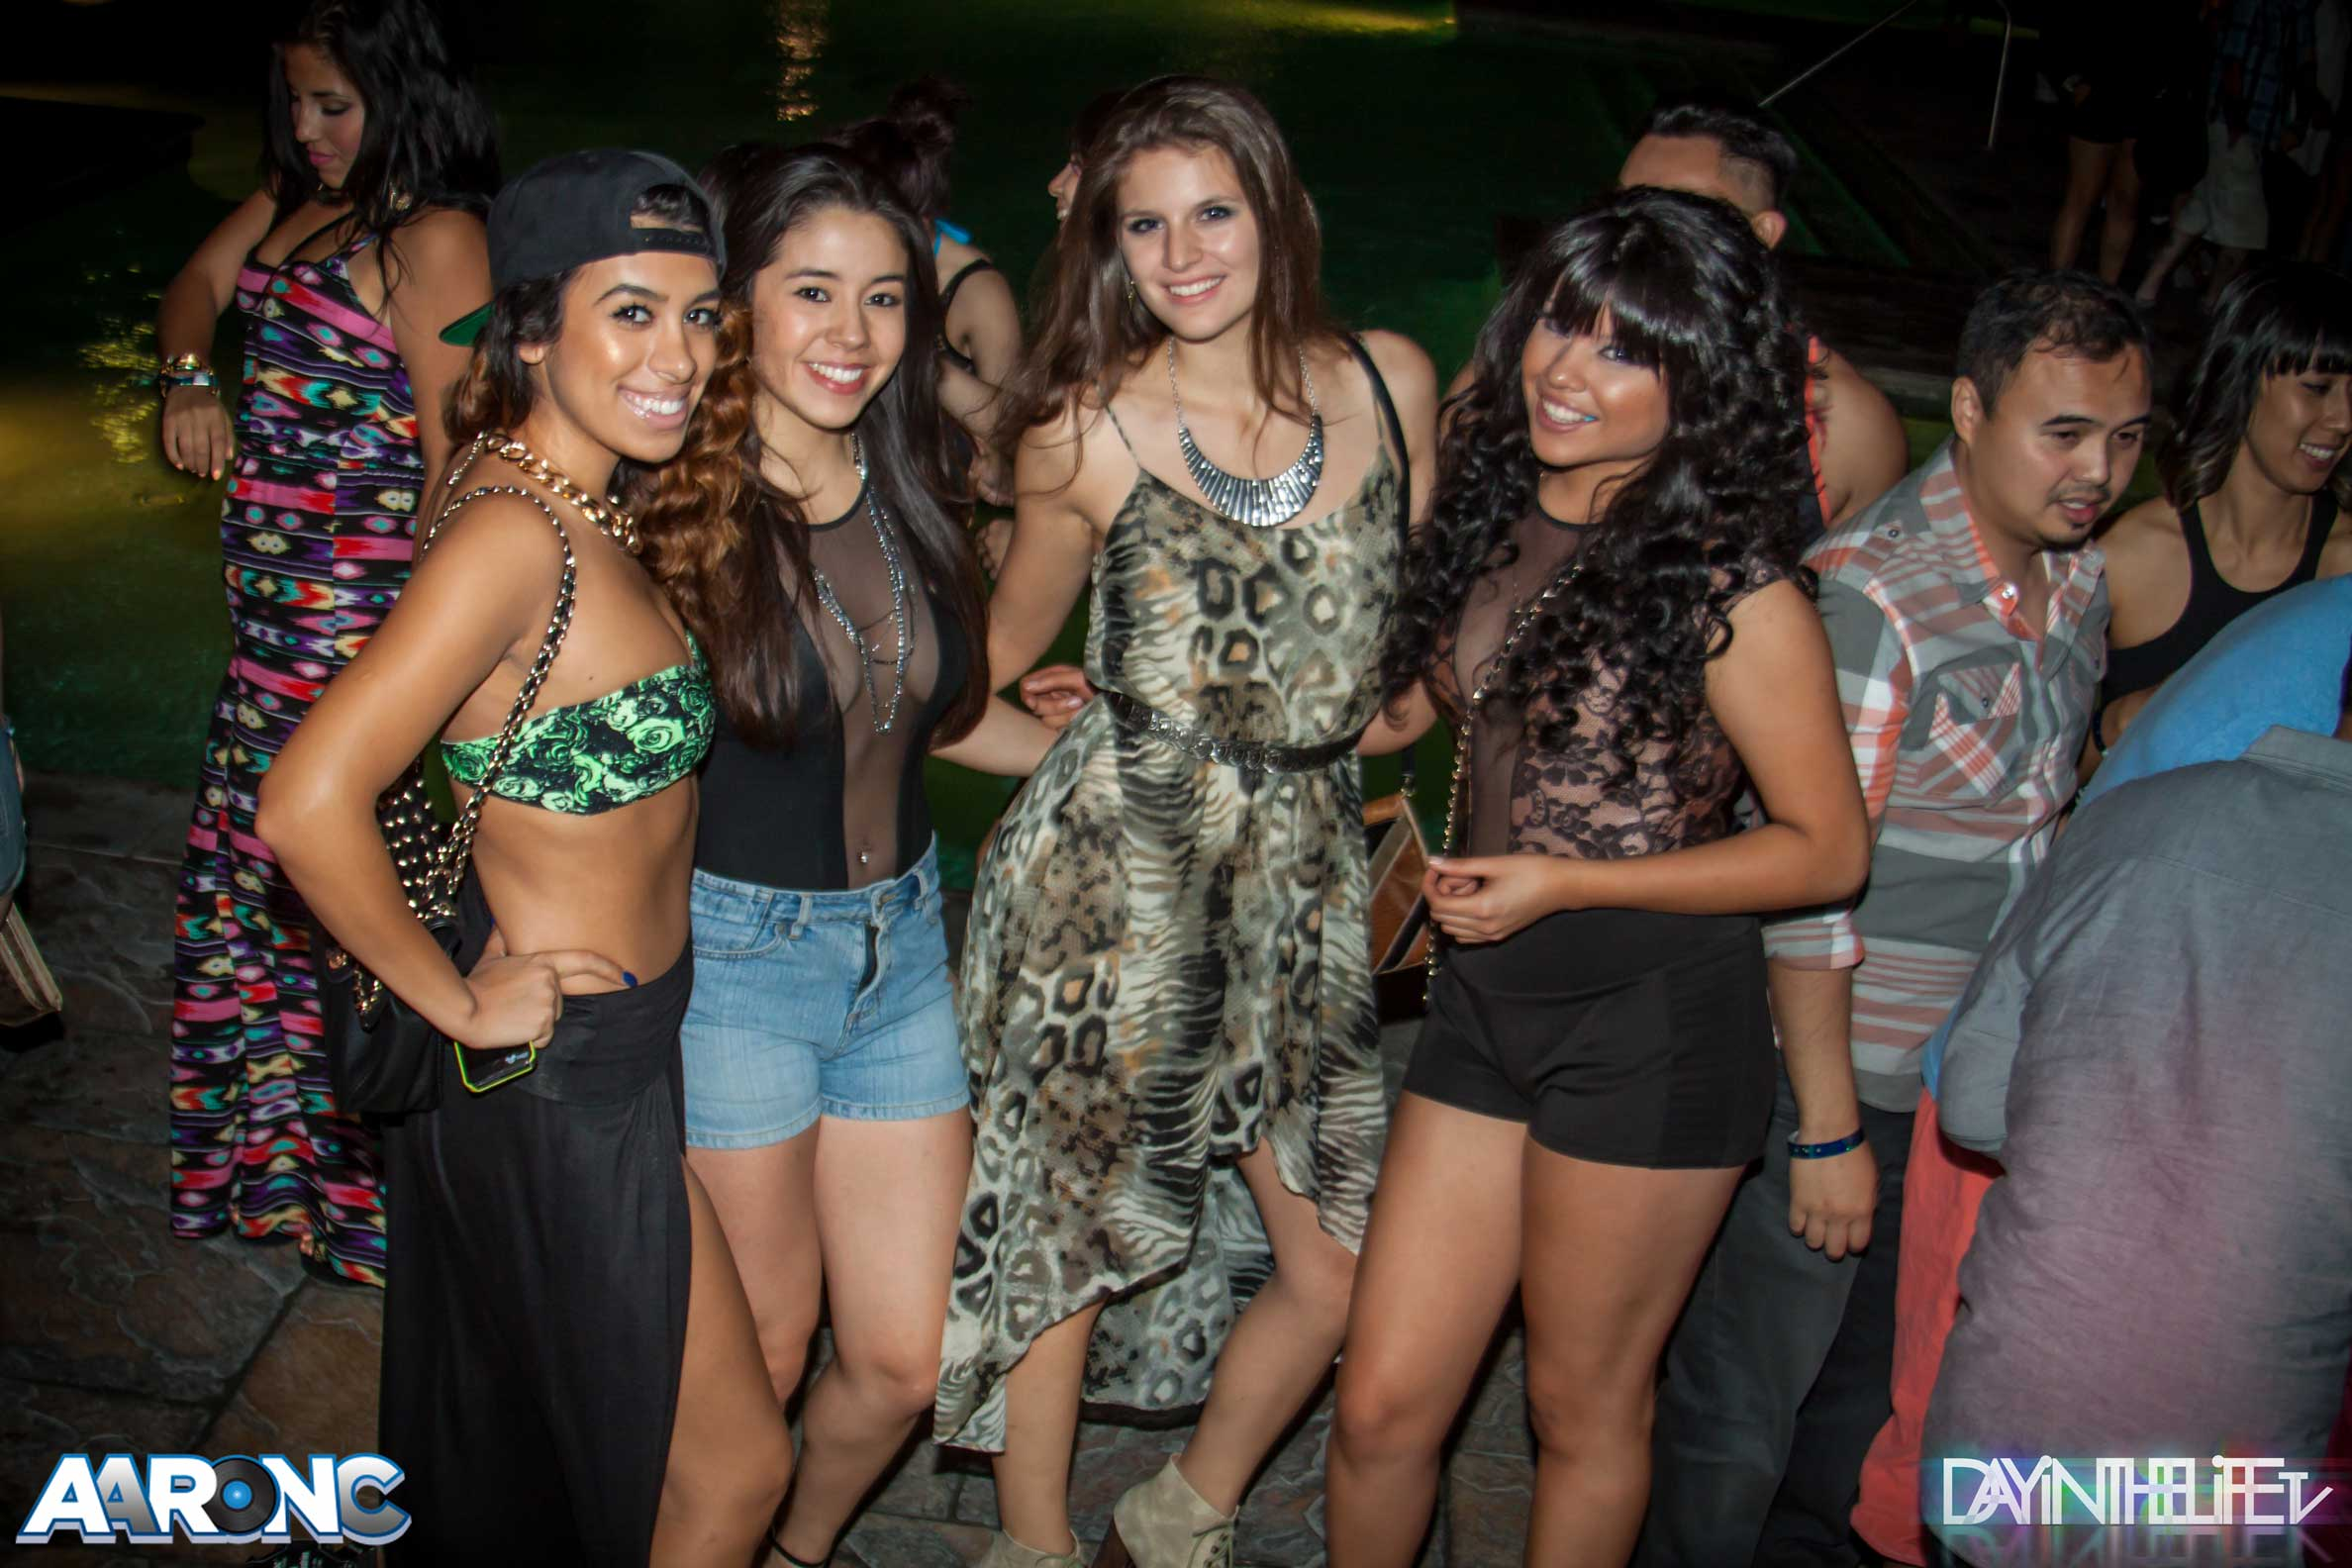 http://djaaronc.com/pictures-are-up-from-friday-52413-opening-week-the-caliente-pool-party/